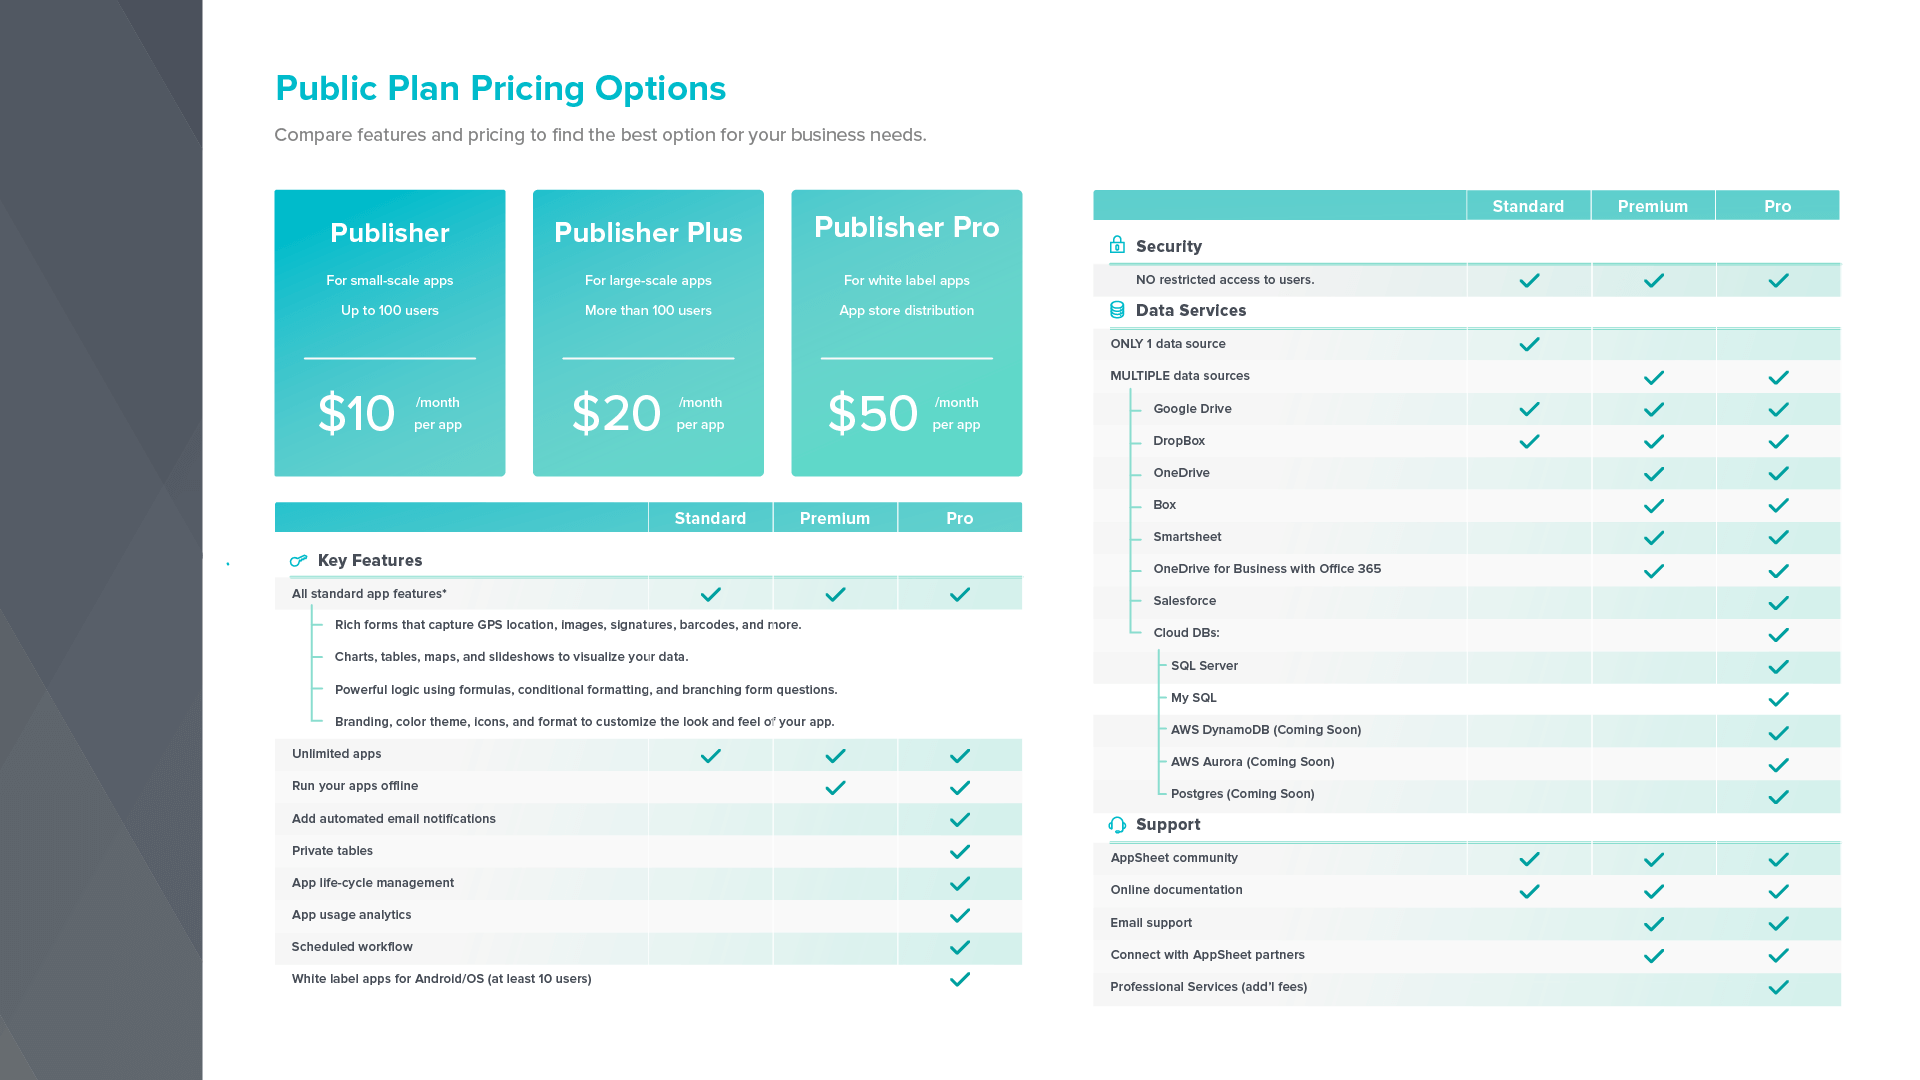 Pricing-Public-01.png